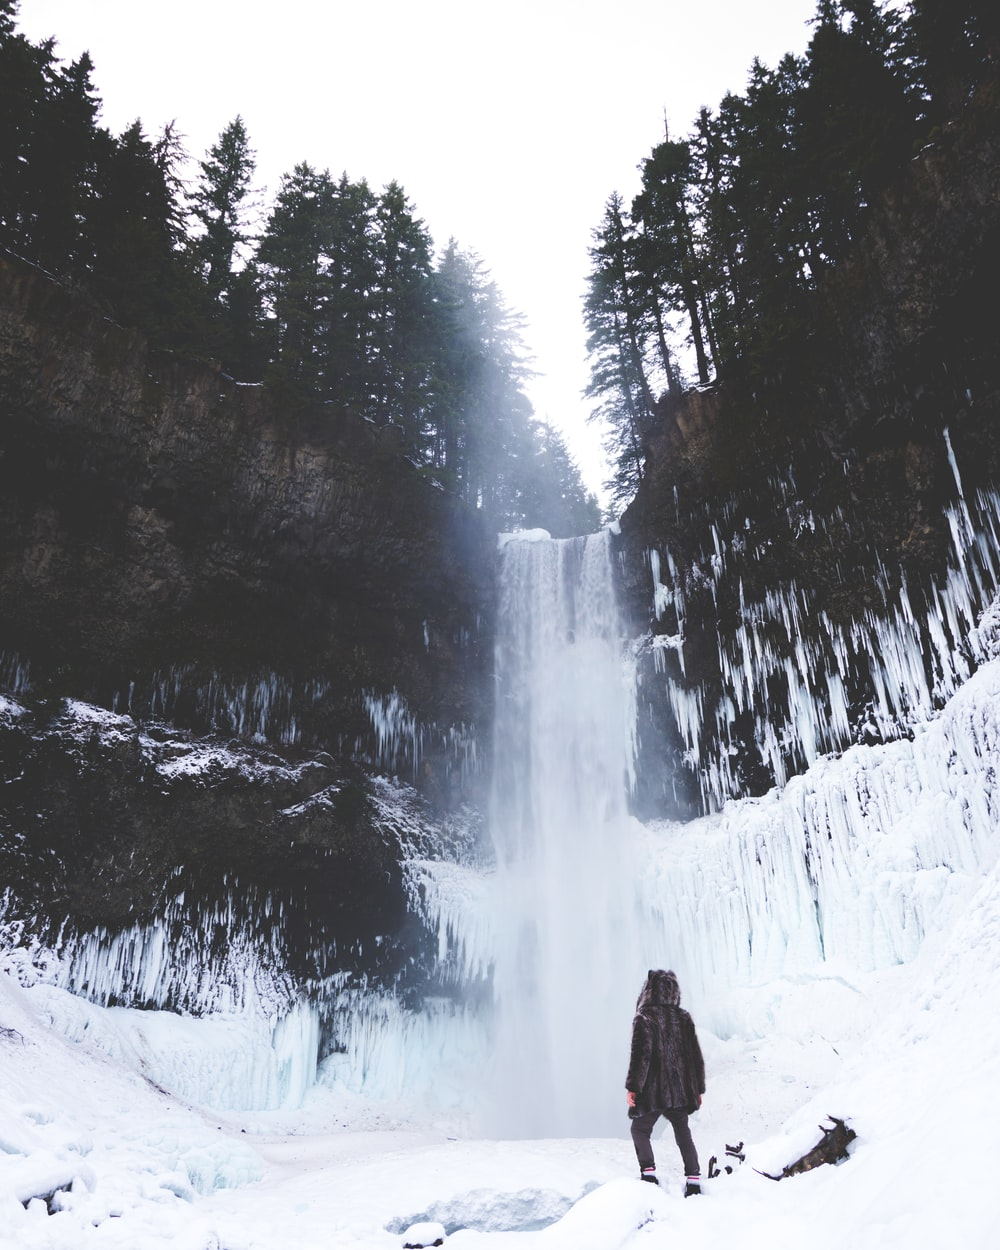 person standing looking at water falls covered by snows